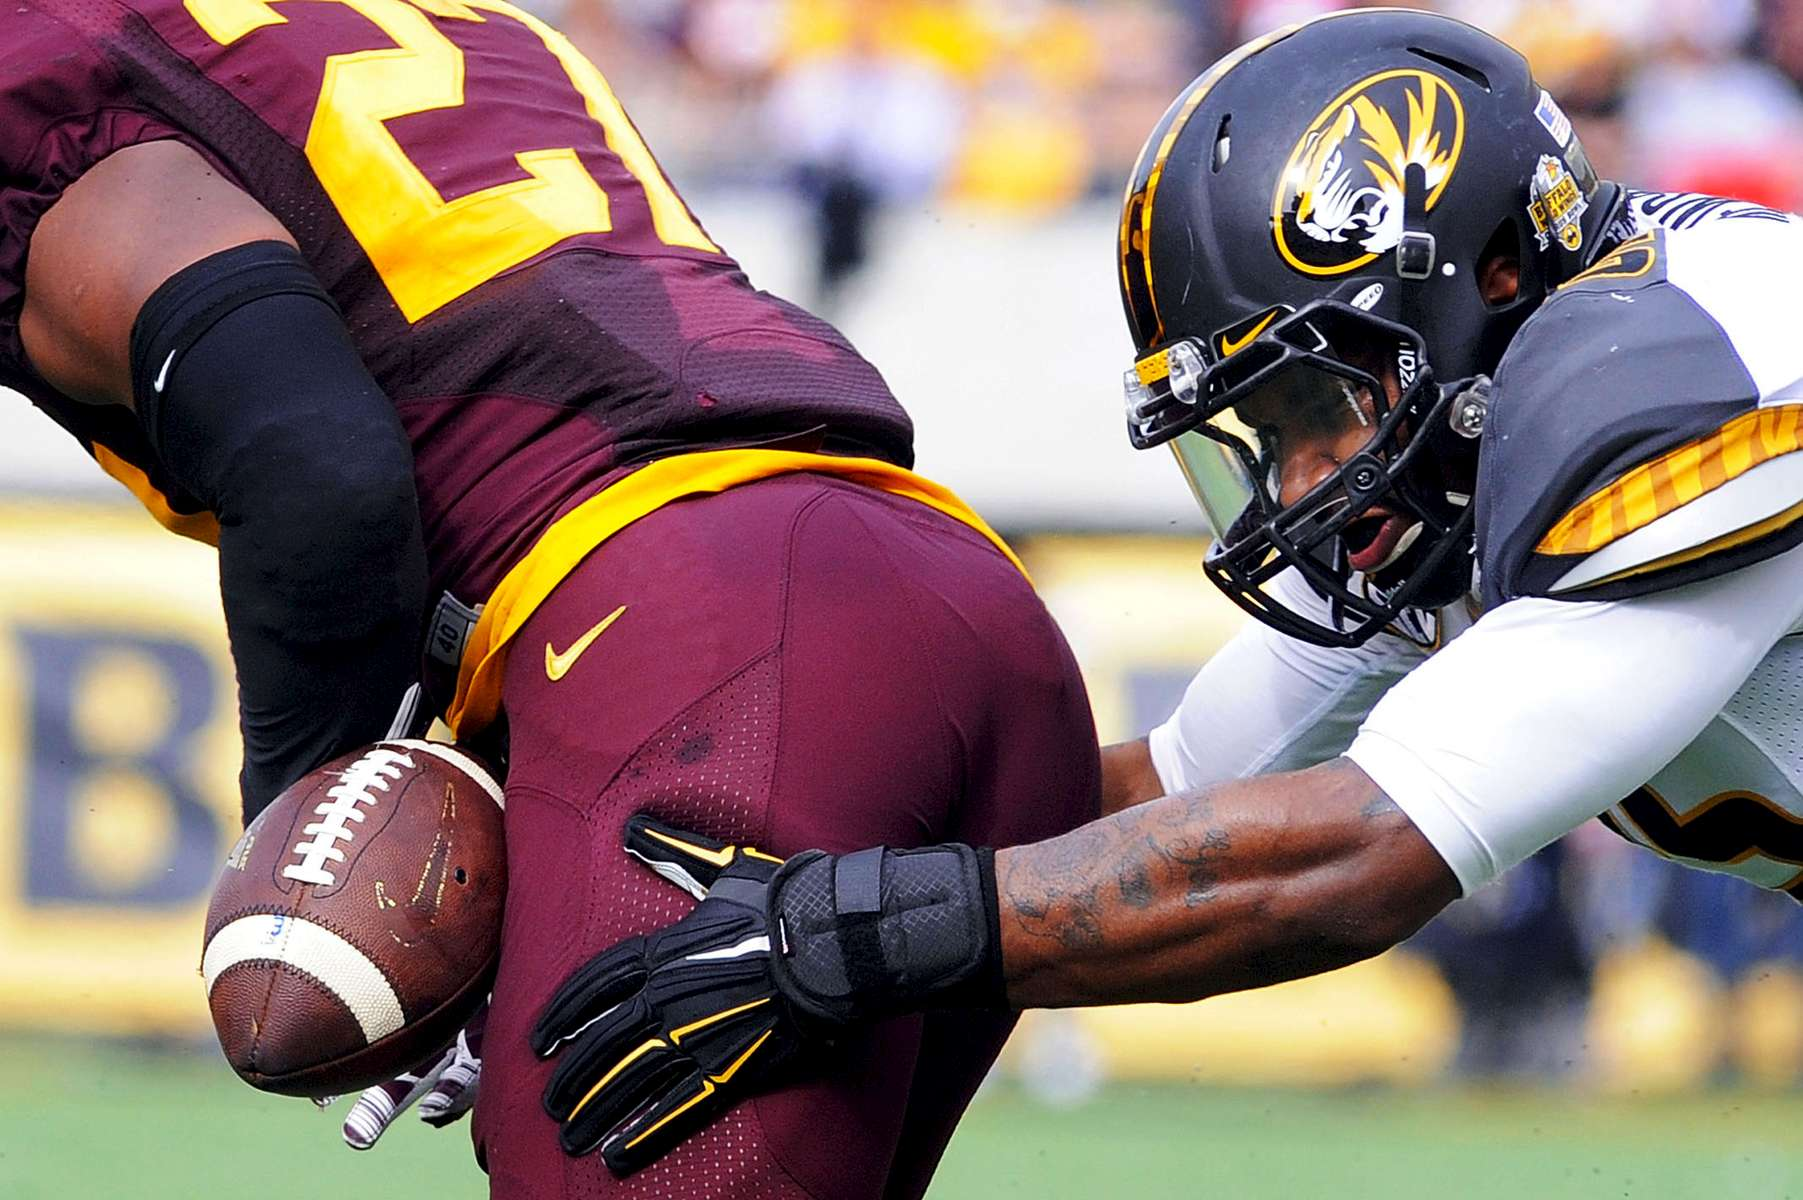 Missouri Tigers linebacker Donavin Newsom (25) forces the ball loose from  Minnesota Golden Gophers running back David Cobb (27) as Missouri beats Minnesota 33-17 in the 2015 Citrus Bowl on Thursday, January 1, 2015 in Orlando, Fla.